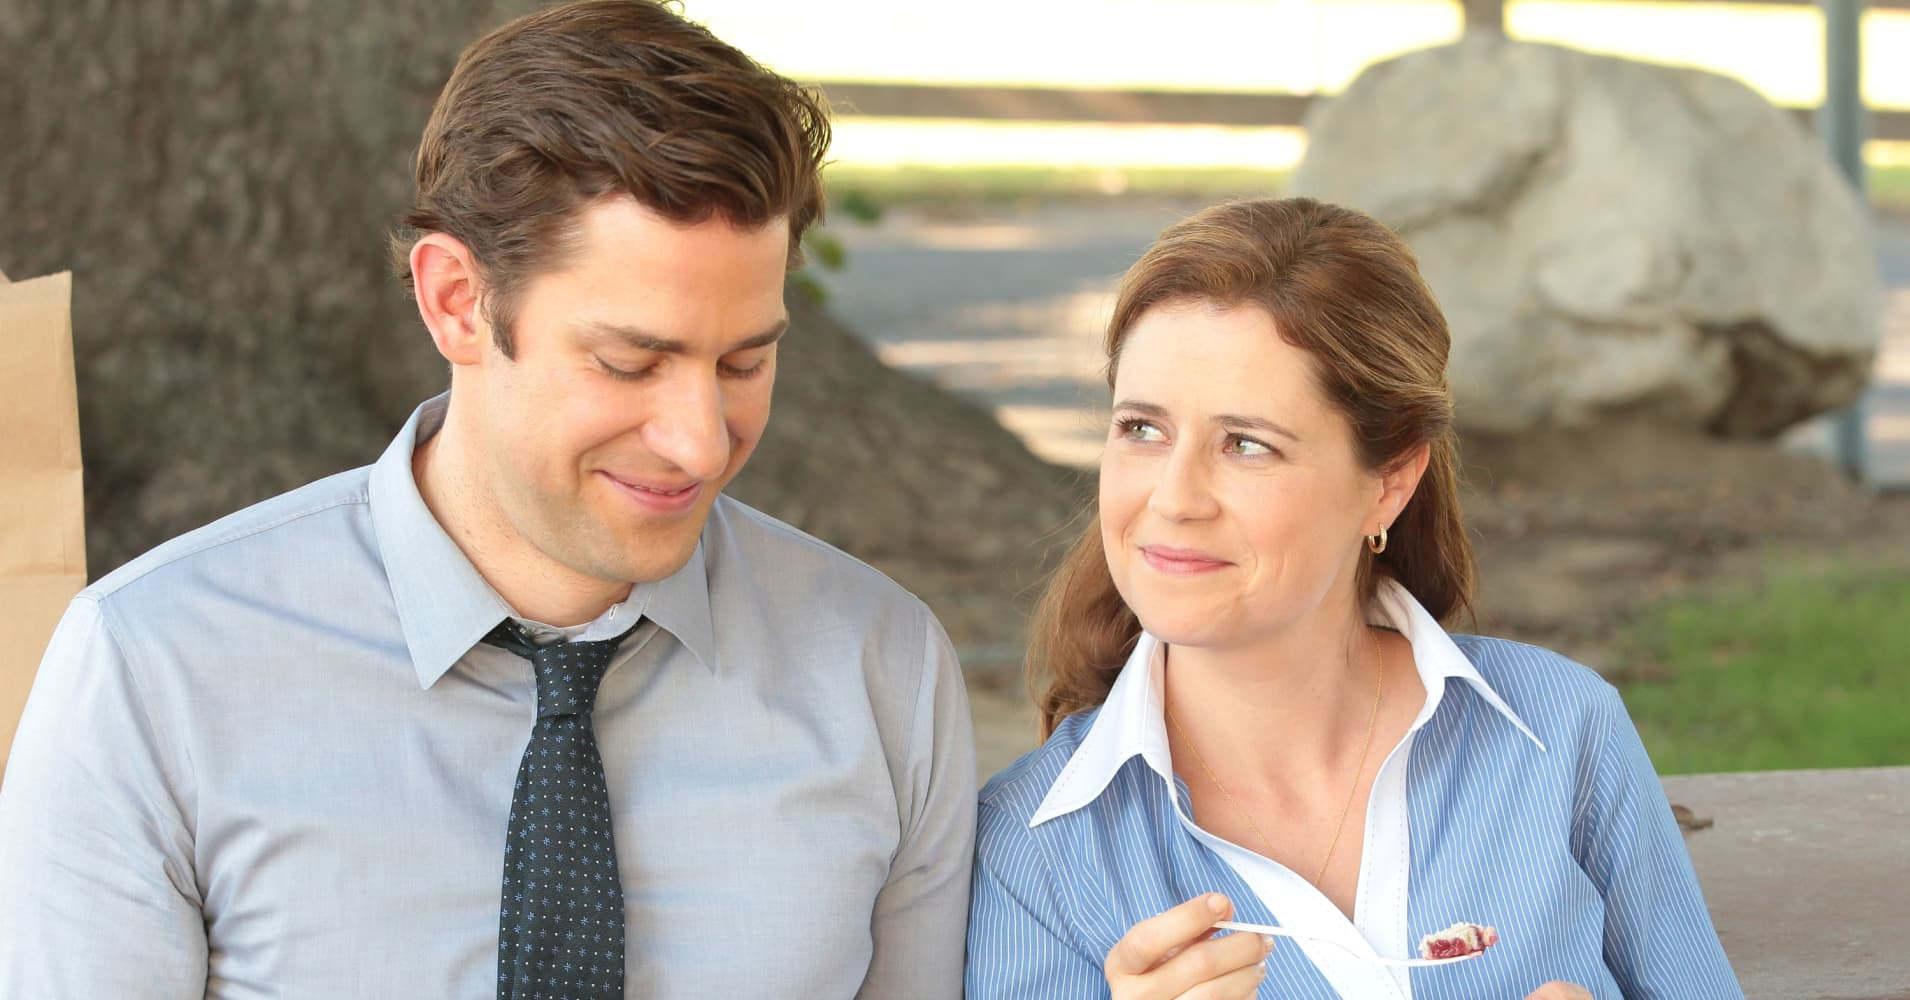 John Krasinski and Jenna Fischer play Jim Halpert and Pam Halpert in the TV show The Office. Their characters are well-known for being coworkers whose crushes turn into marriage.